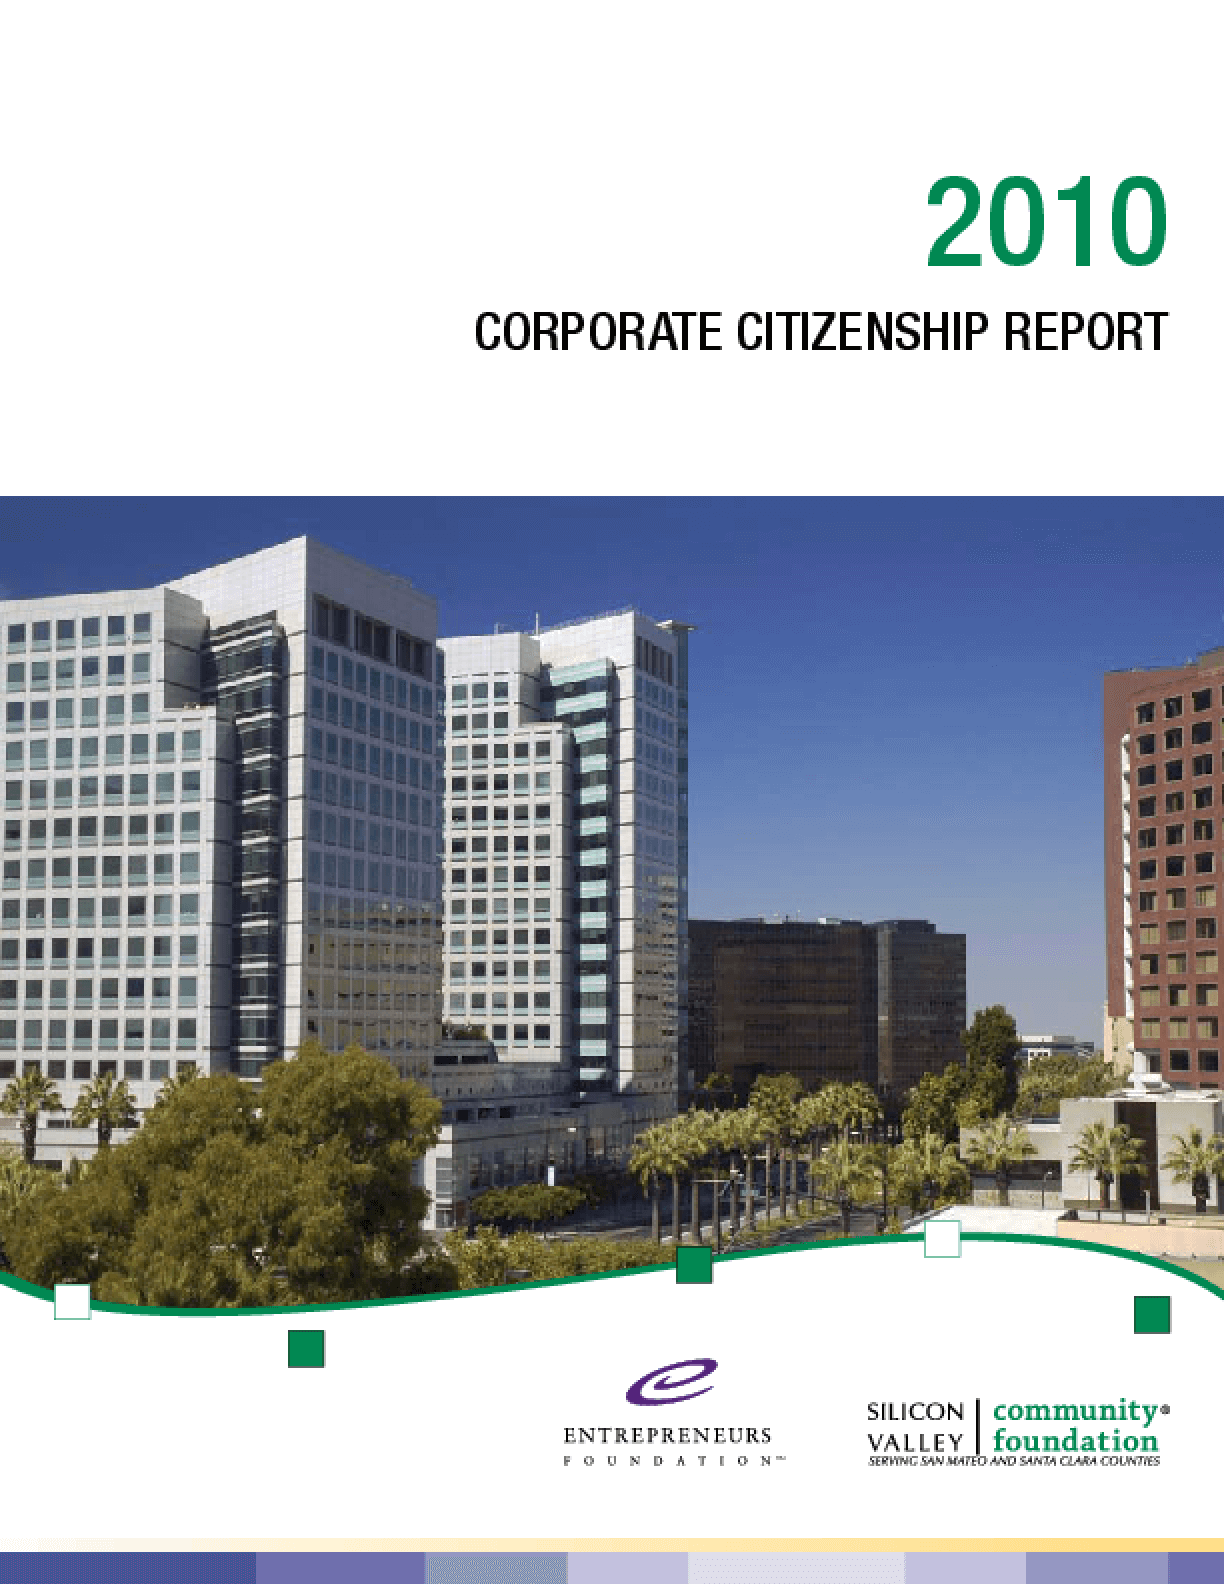 2010 Corporate Citizenship Report